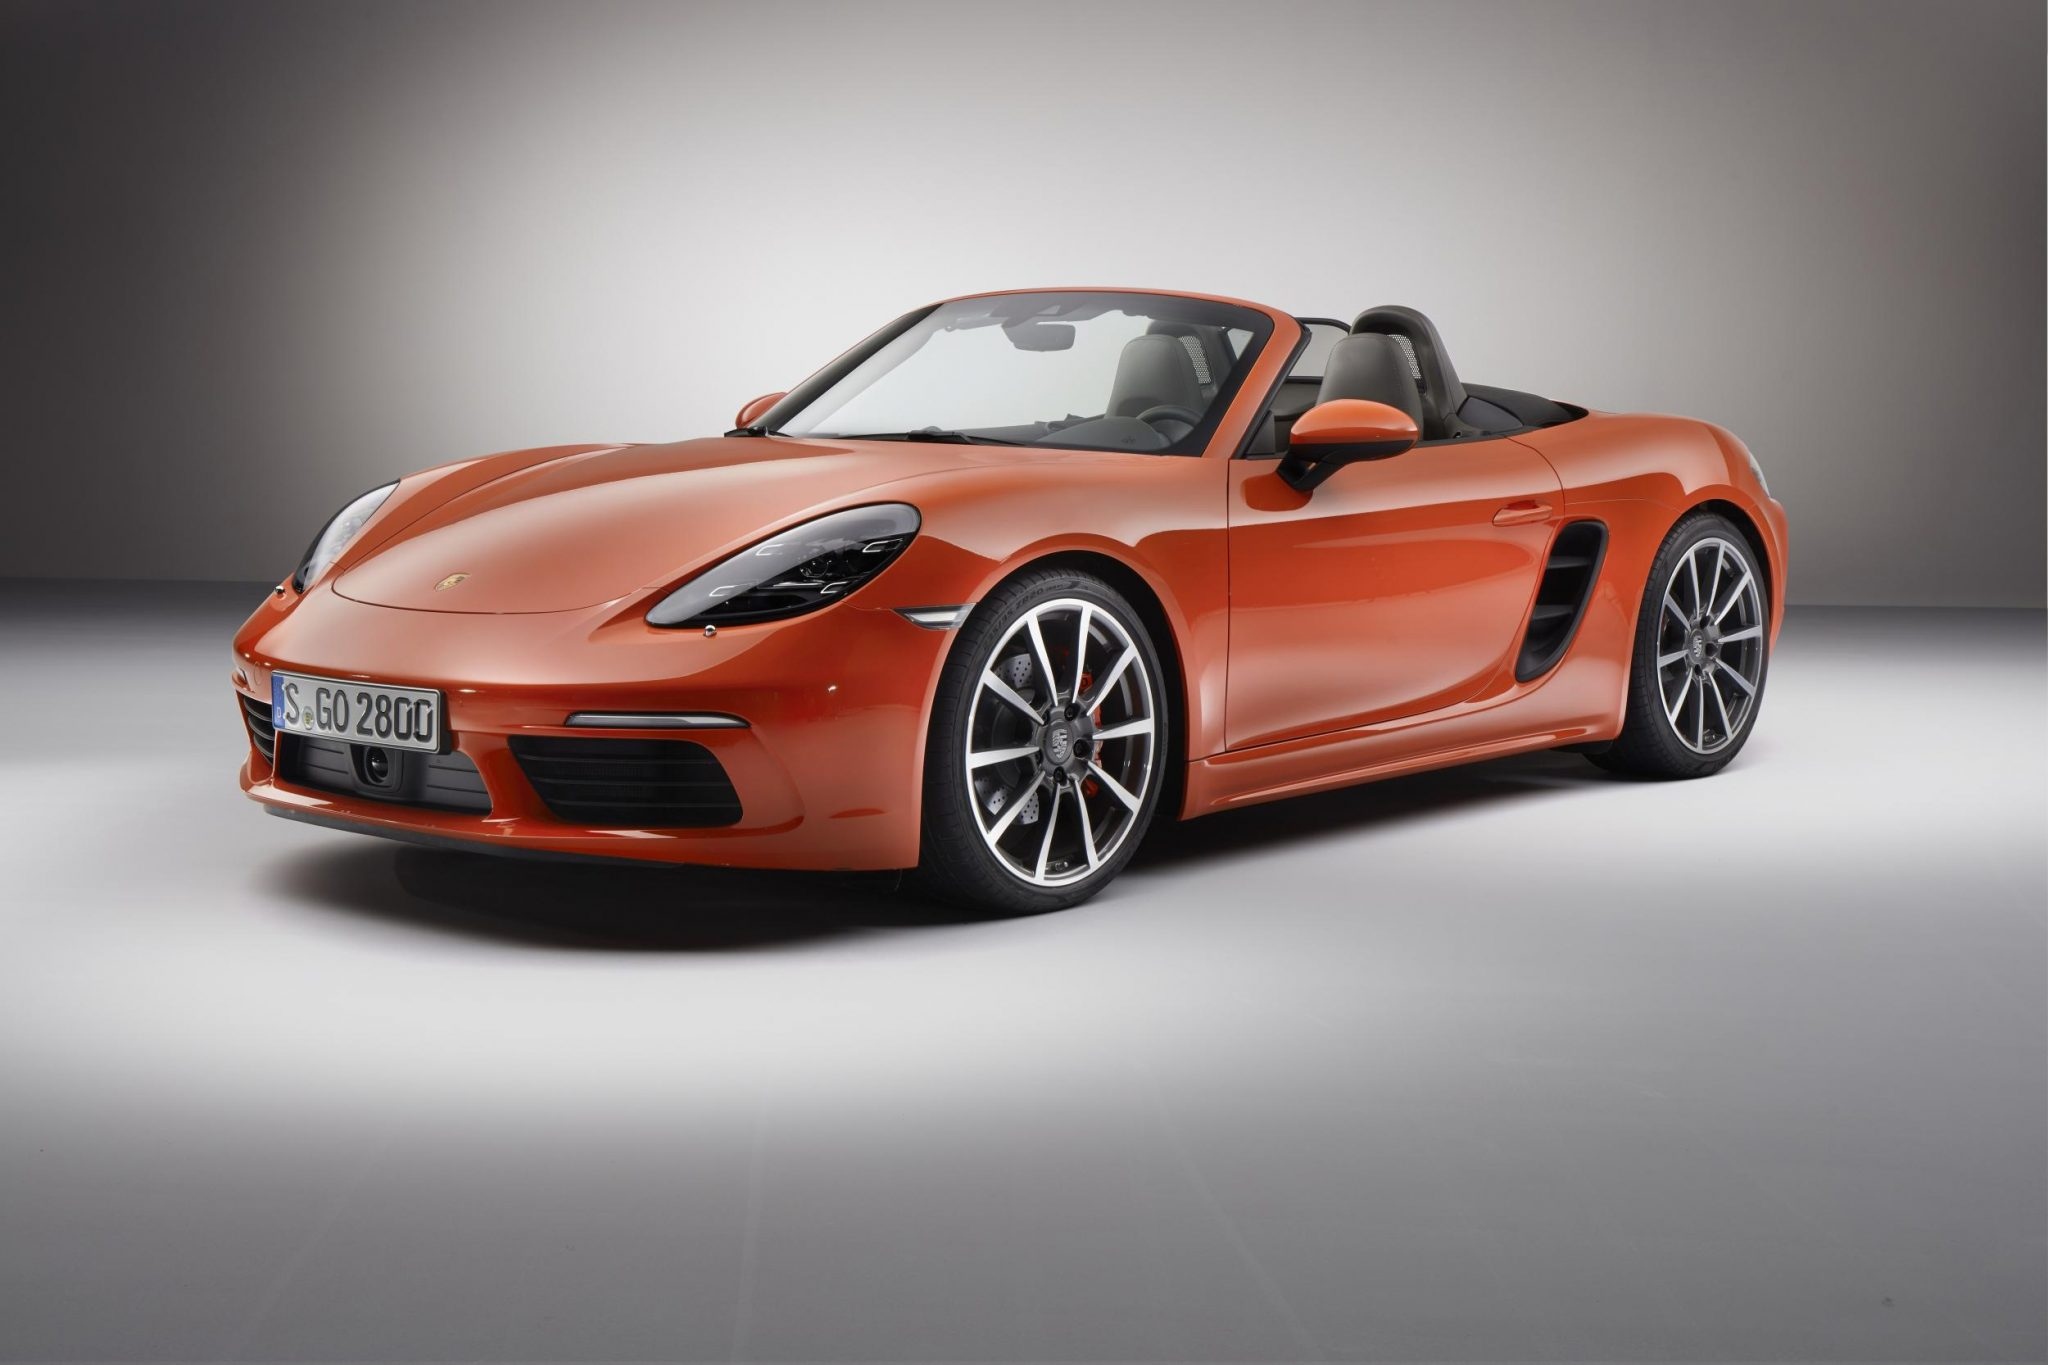 porsche cars news 718 boxster unveiled with turbo engine. Black Bedroom Furniture Sets. Home Design Ideas